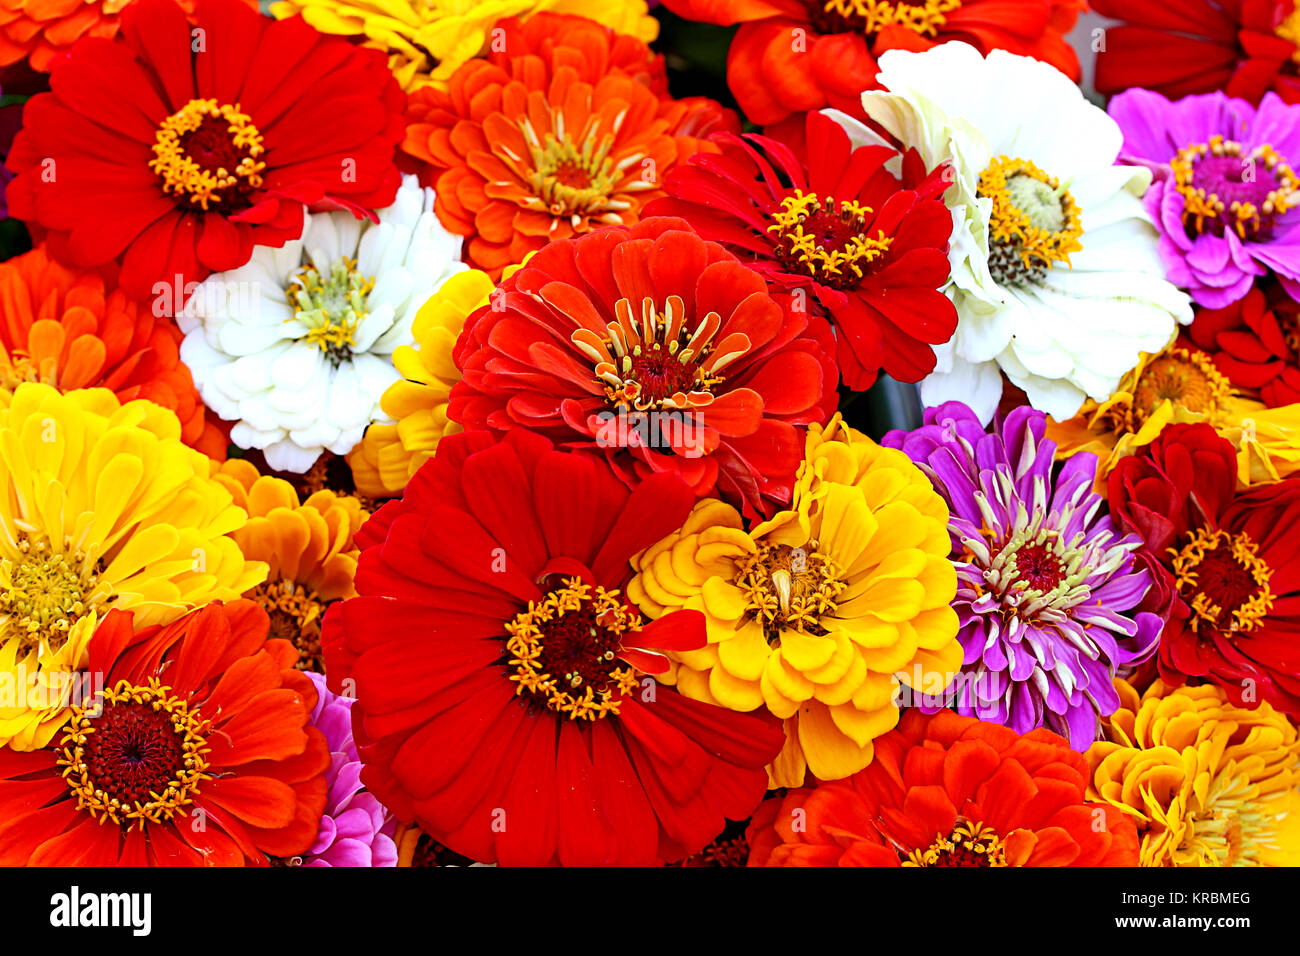 colorful bouquet of zinnias - Stock Image